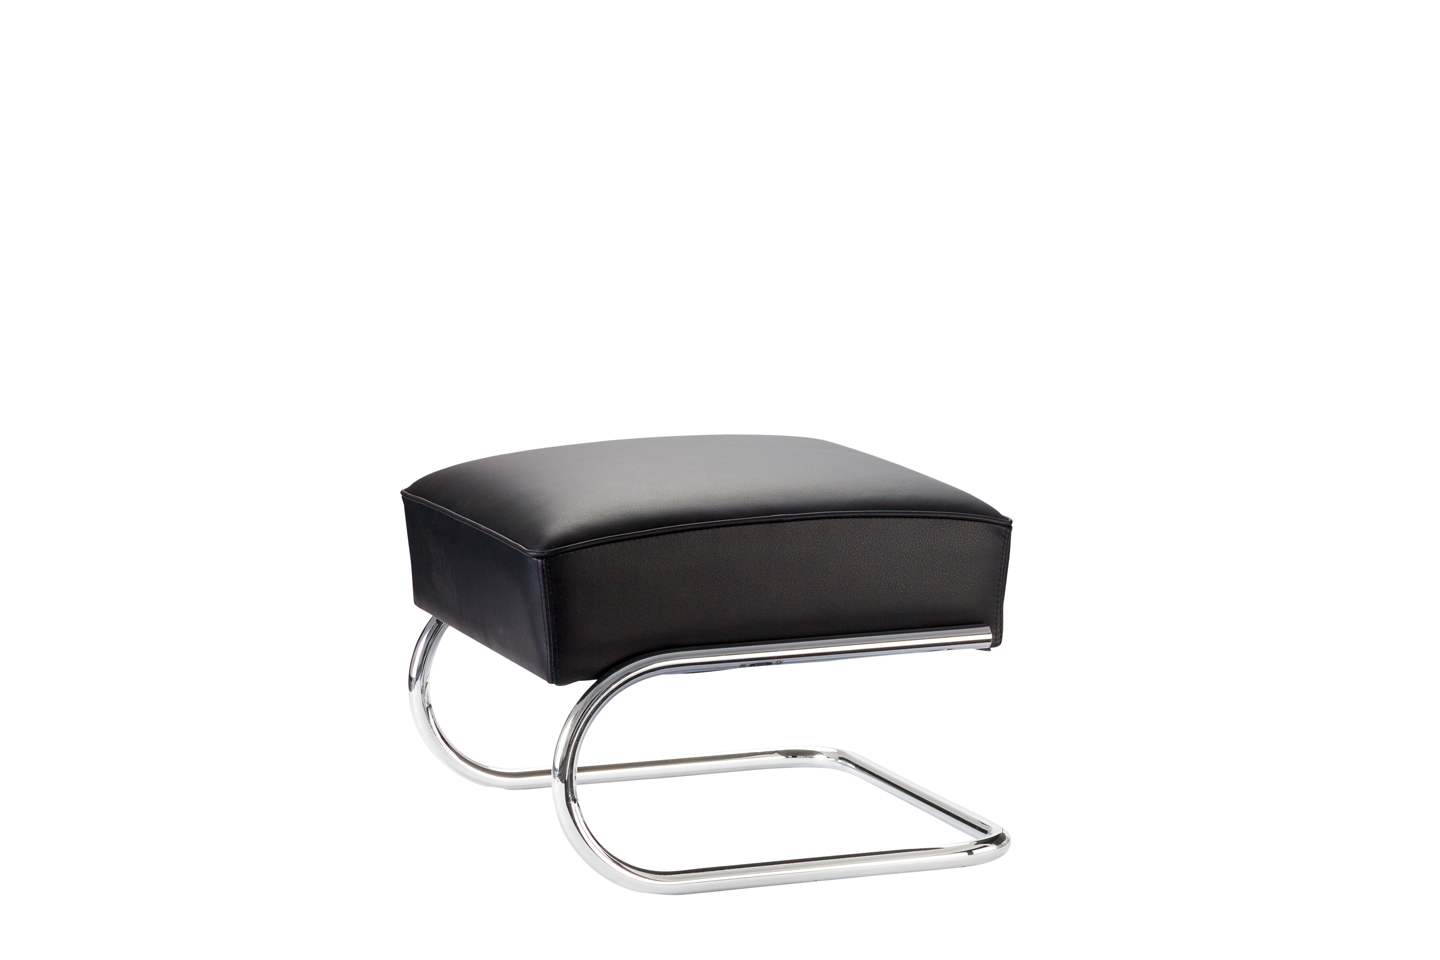 Hocker S411, THONET, licht en meubels, hocker